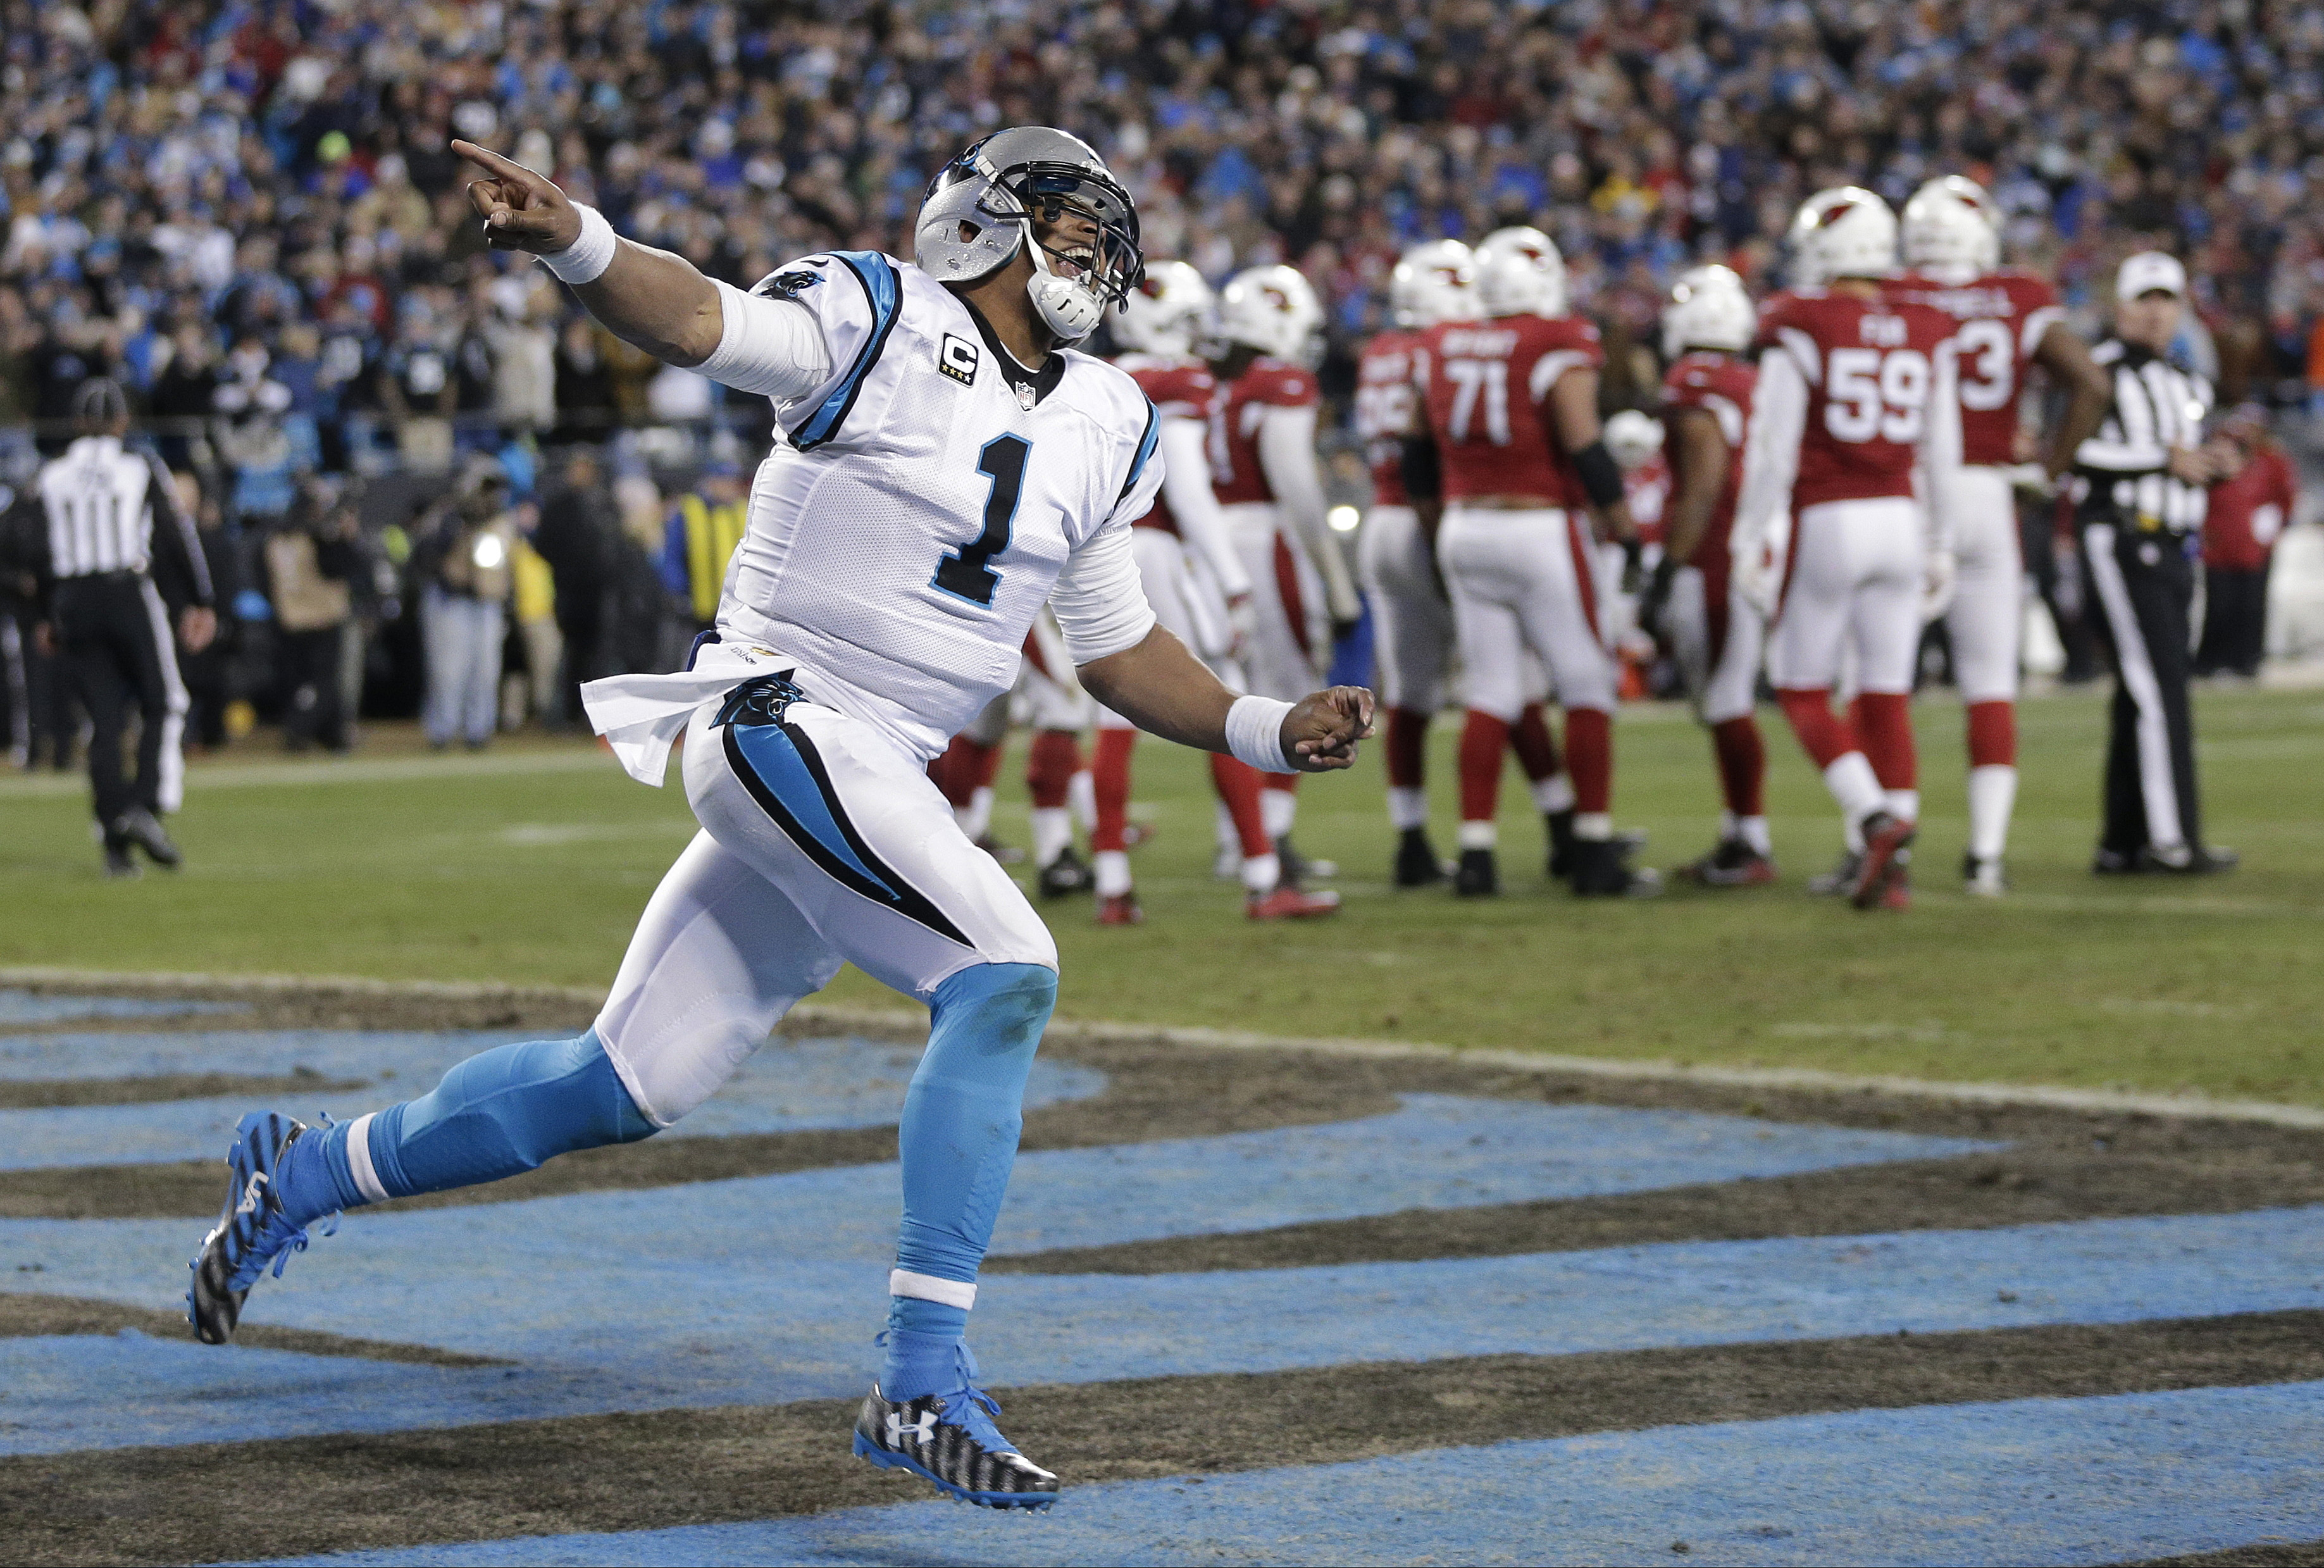 FILE - In this Jan. 24, 2016, file photo, Carolina Panthers' Cam Newton celebrates his touchdown run during the first half the NFL football NFC championship game against the Arizona Cardinals in Charlotte, N.C. The Denver Broncos may want to make sure the